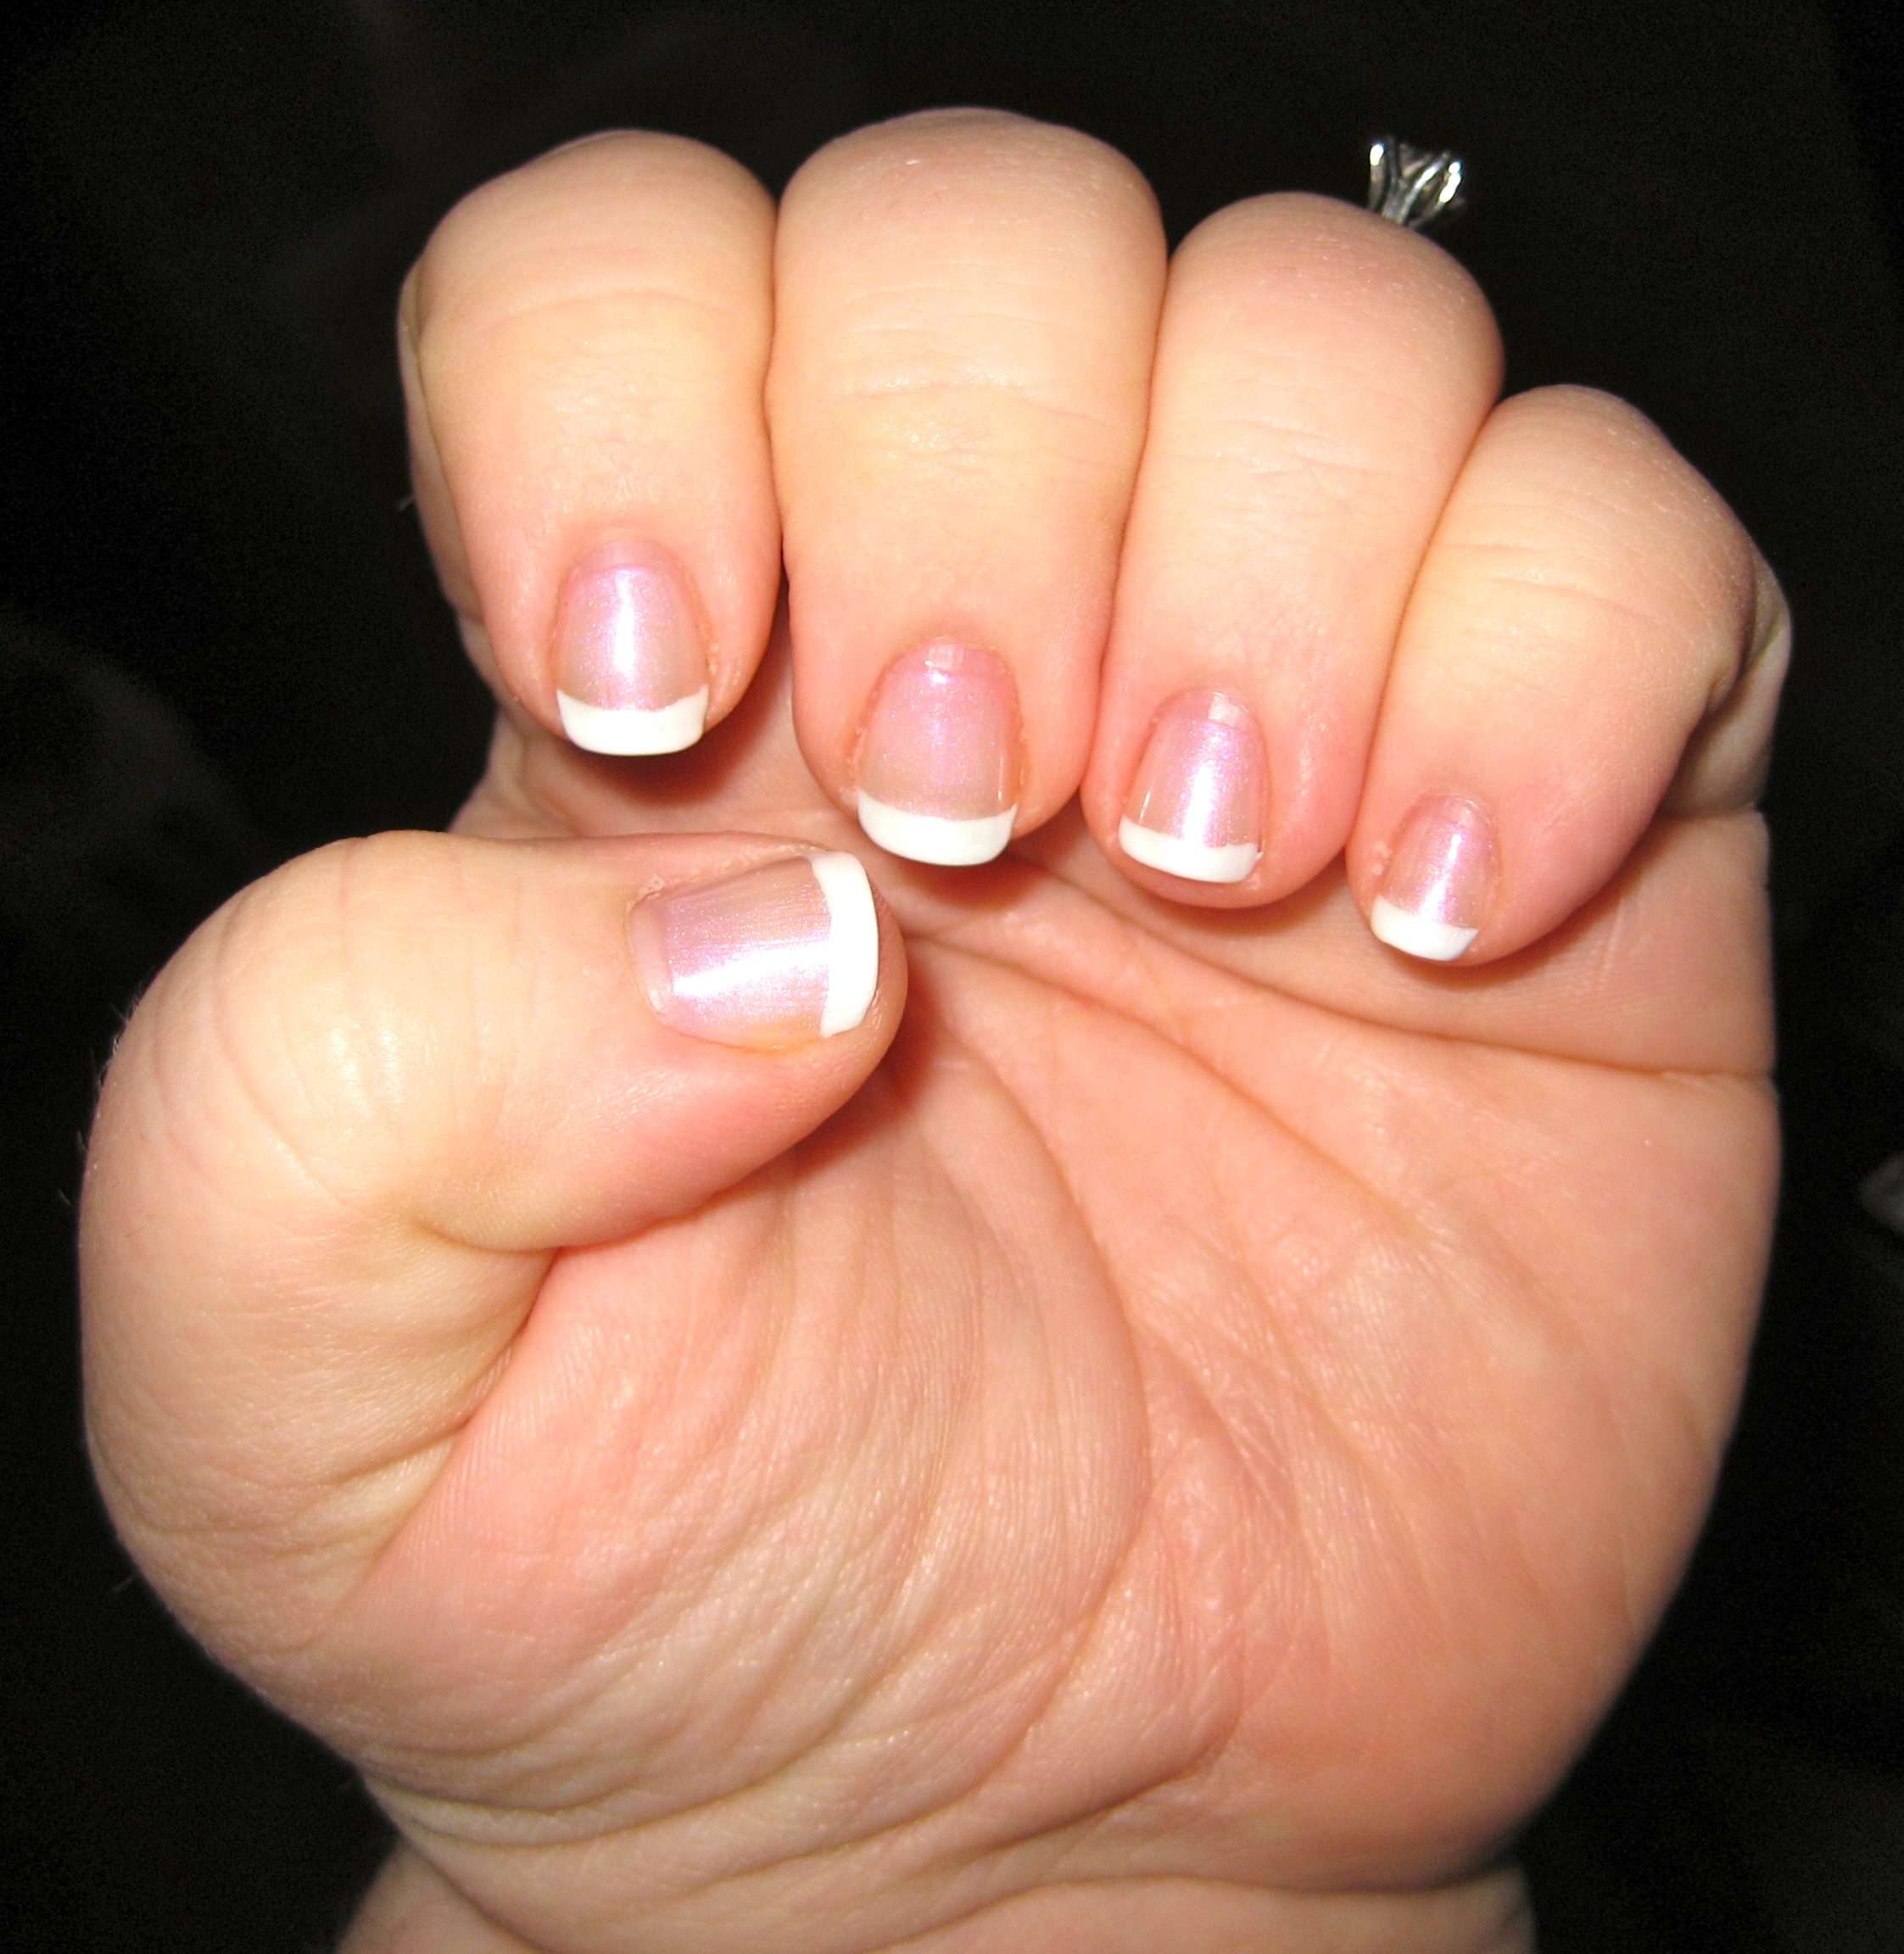 of Growth in my Nail Bed